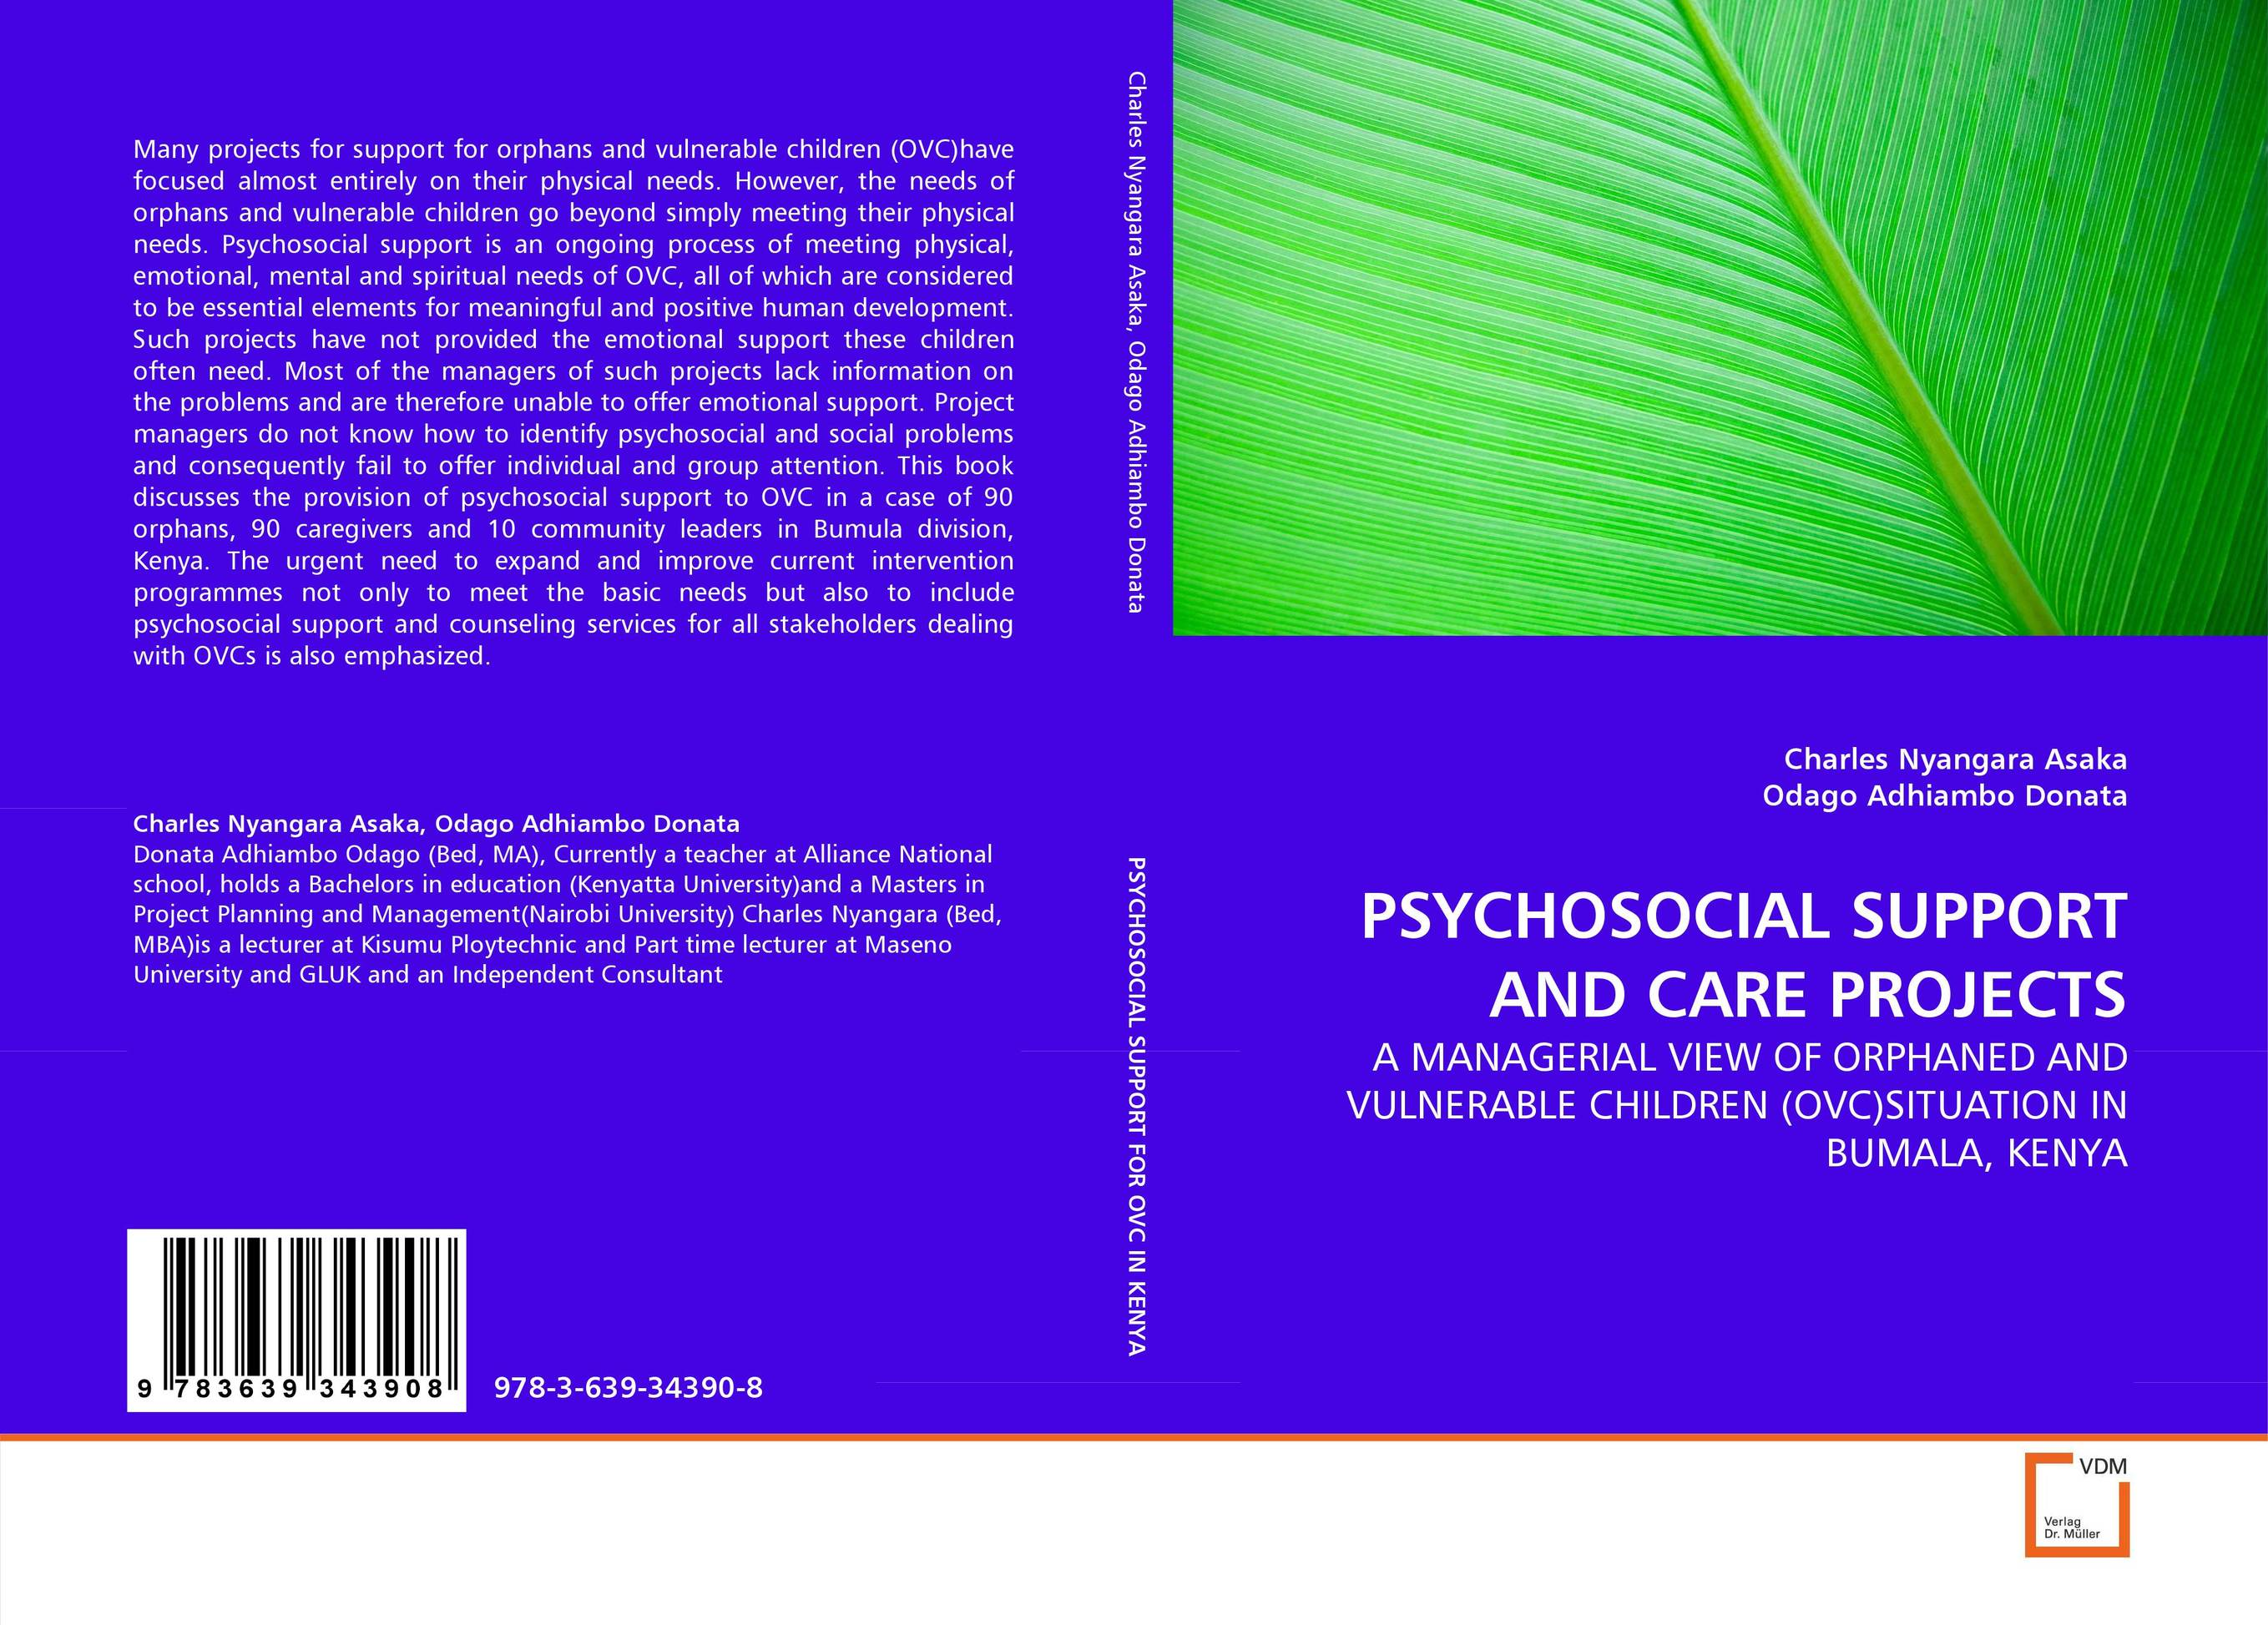 PSYCHOSOCIAL SUPPORT AND CARE PROJECTS